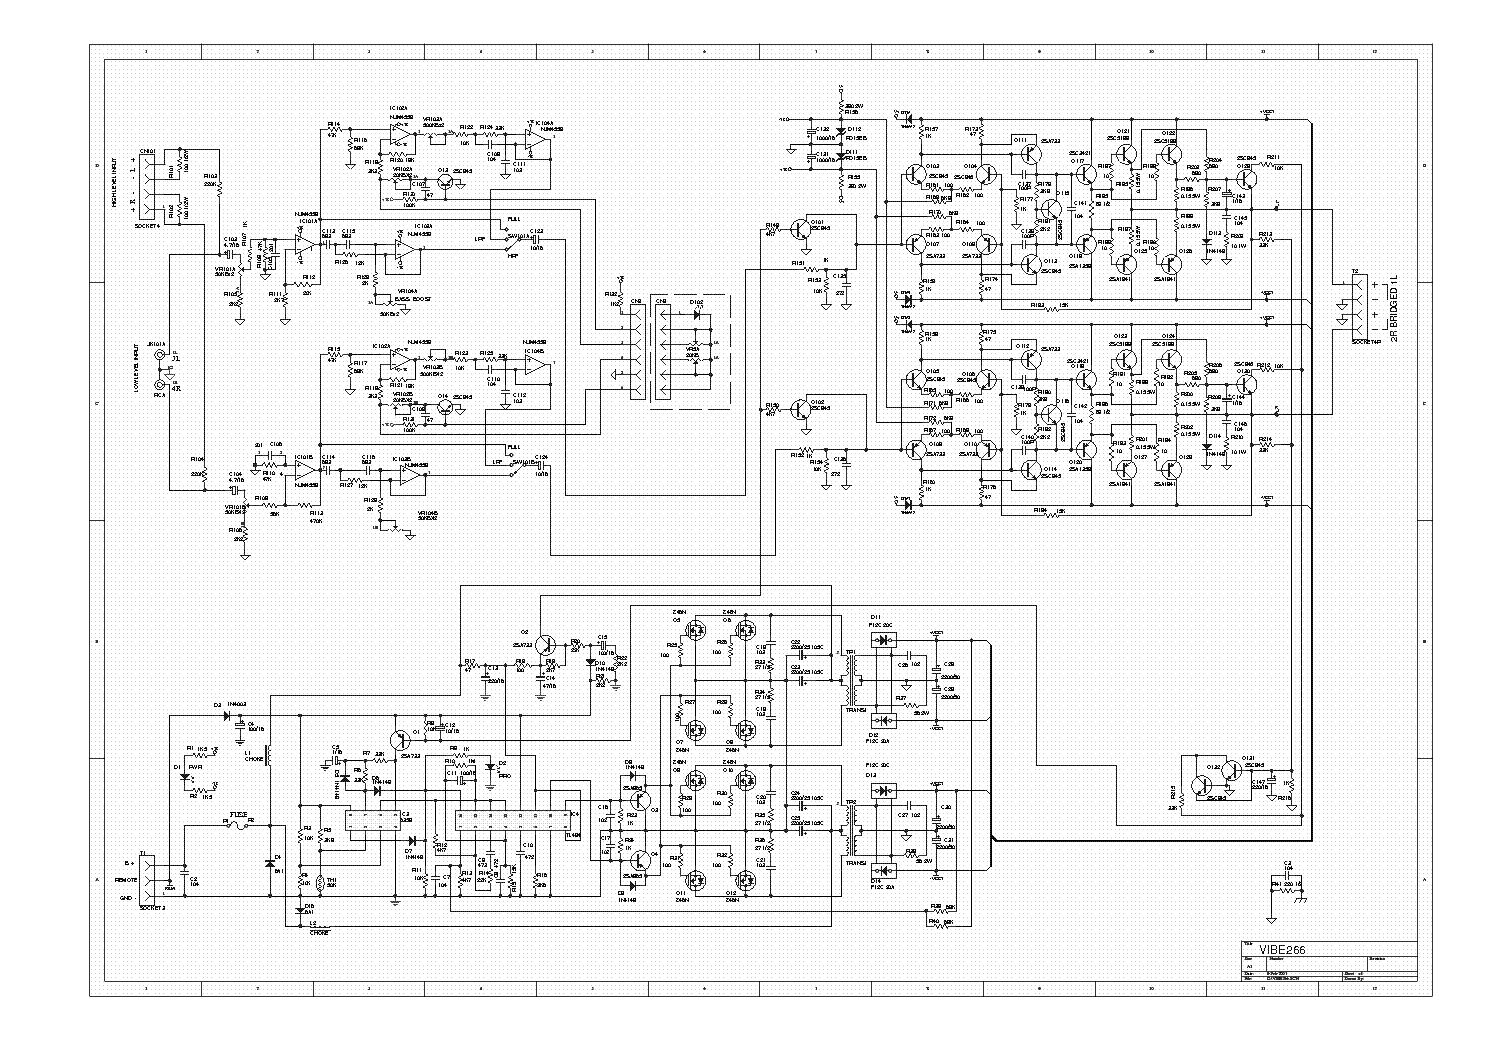 lanzar vibe266 car amplifier sch service manual download  schematics  eeprom  repair info for